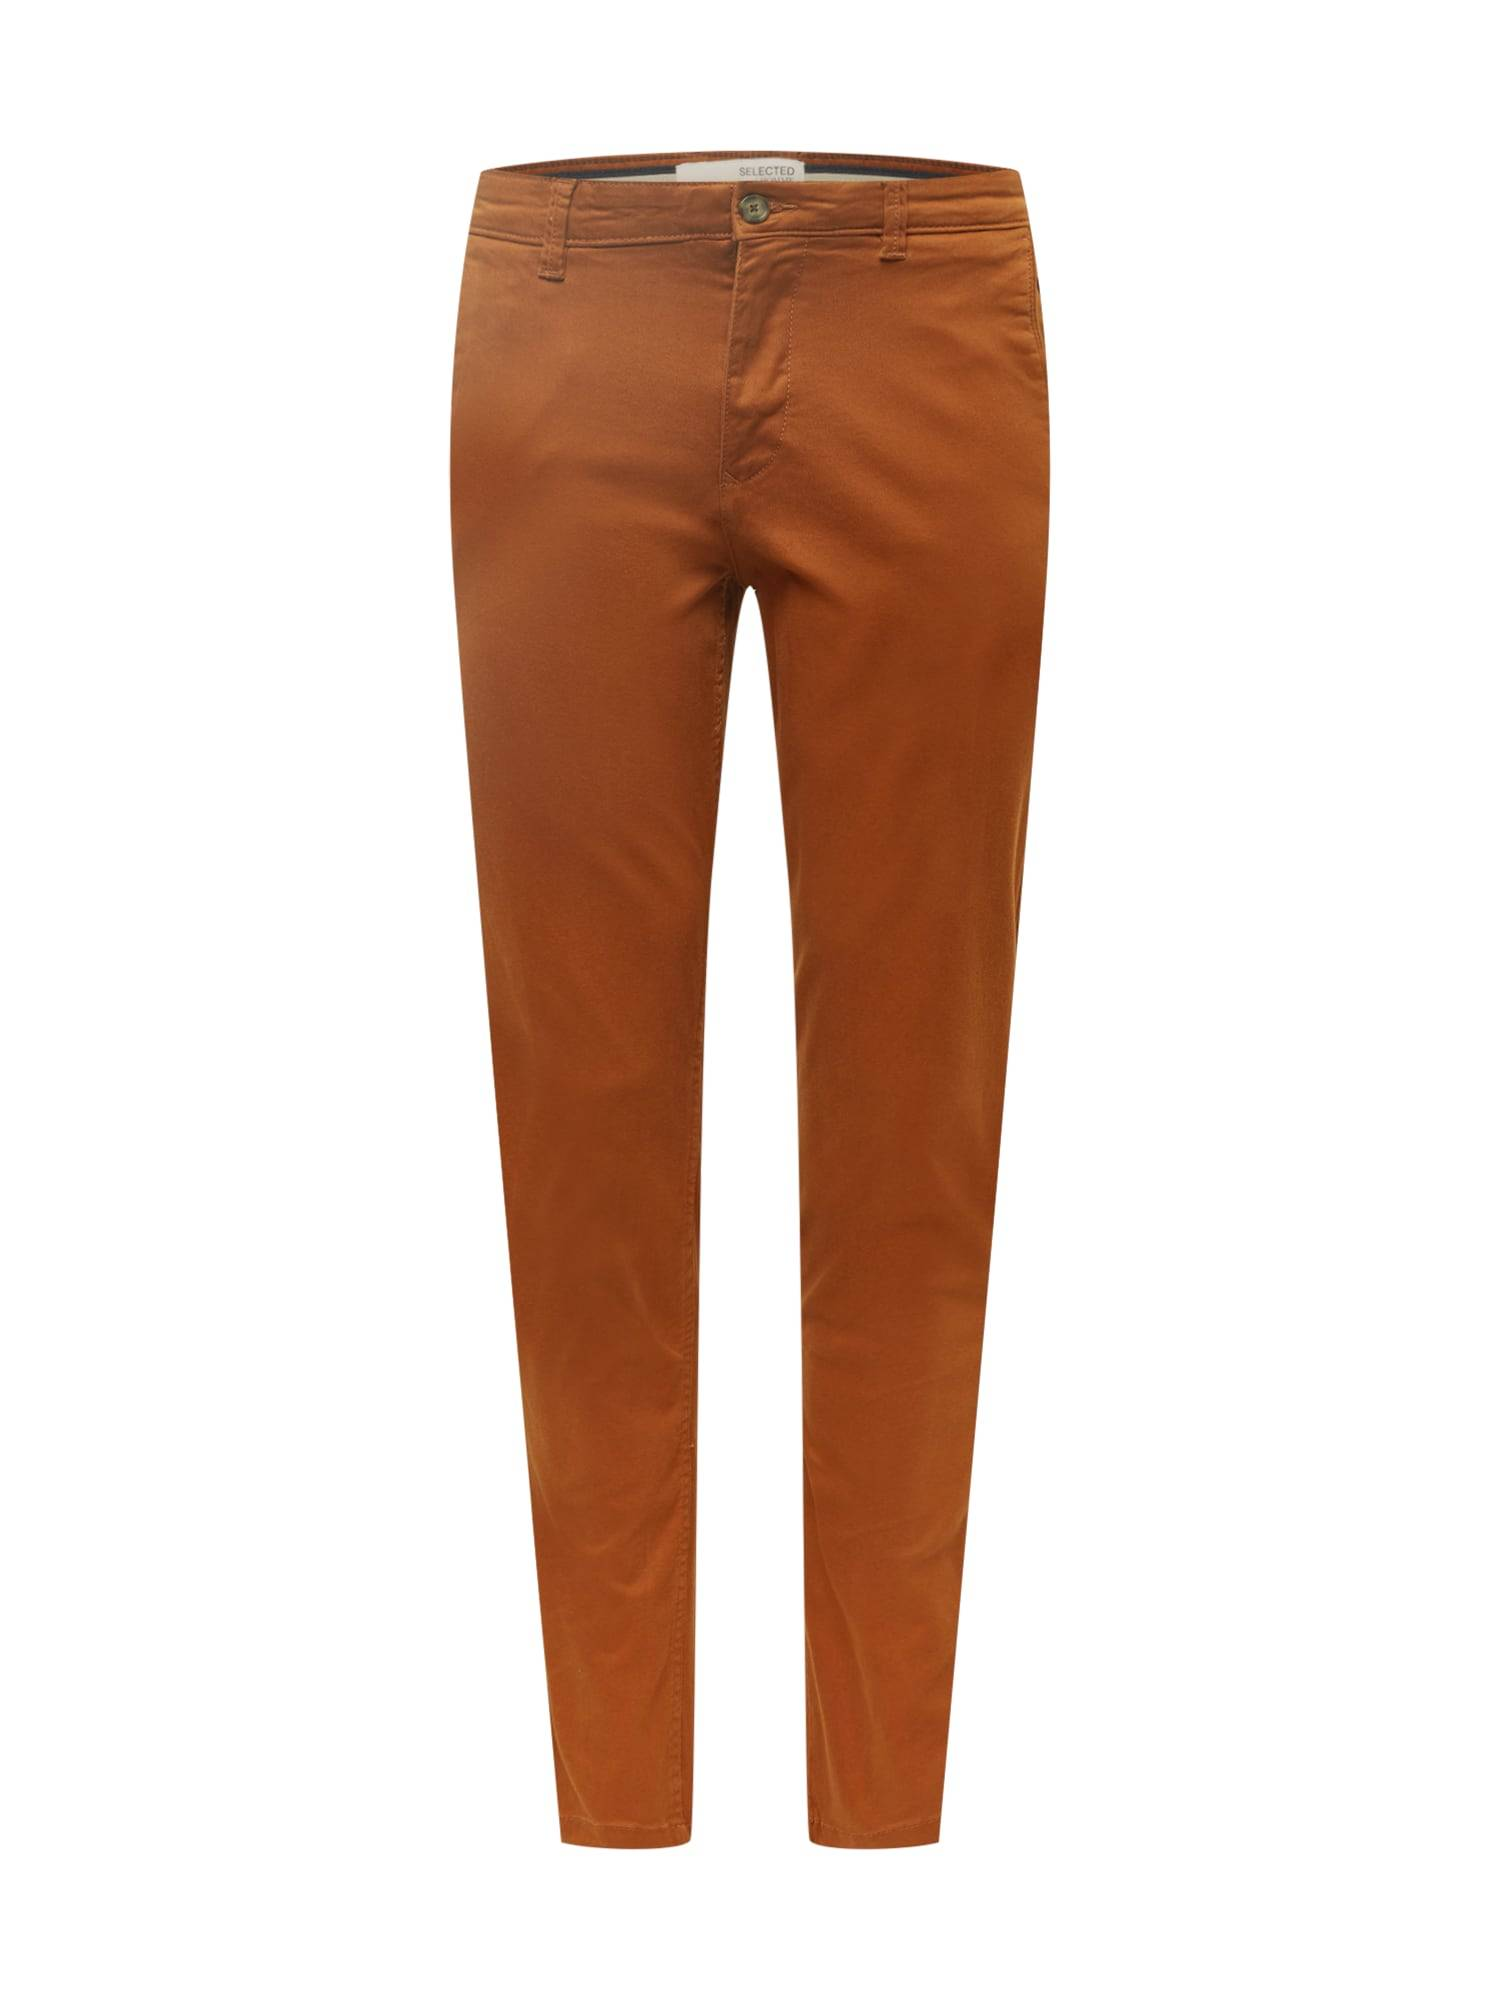 SELECTED HOMME Pantalon chino 'New Paris'  - Marron - Taille: 34 - male